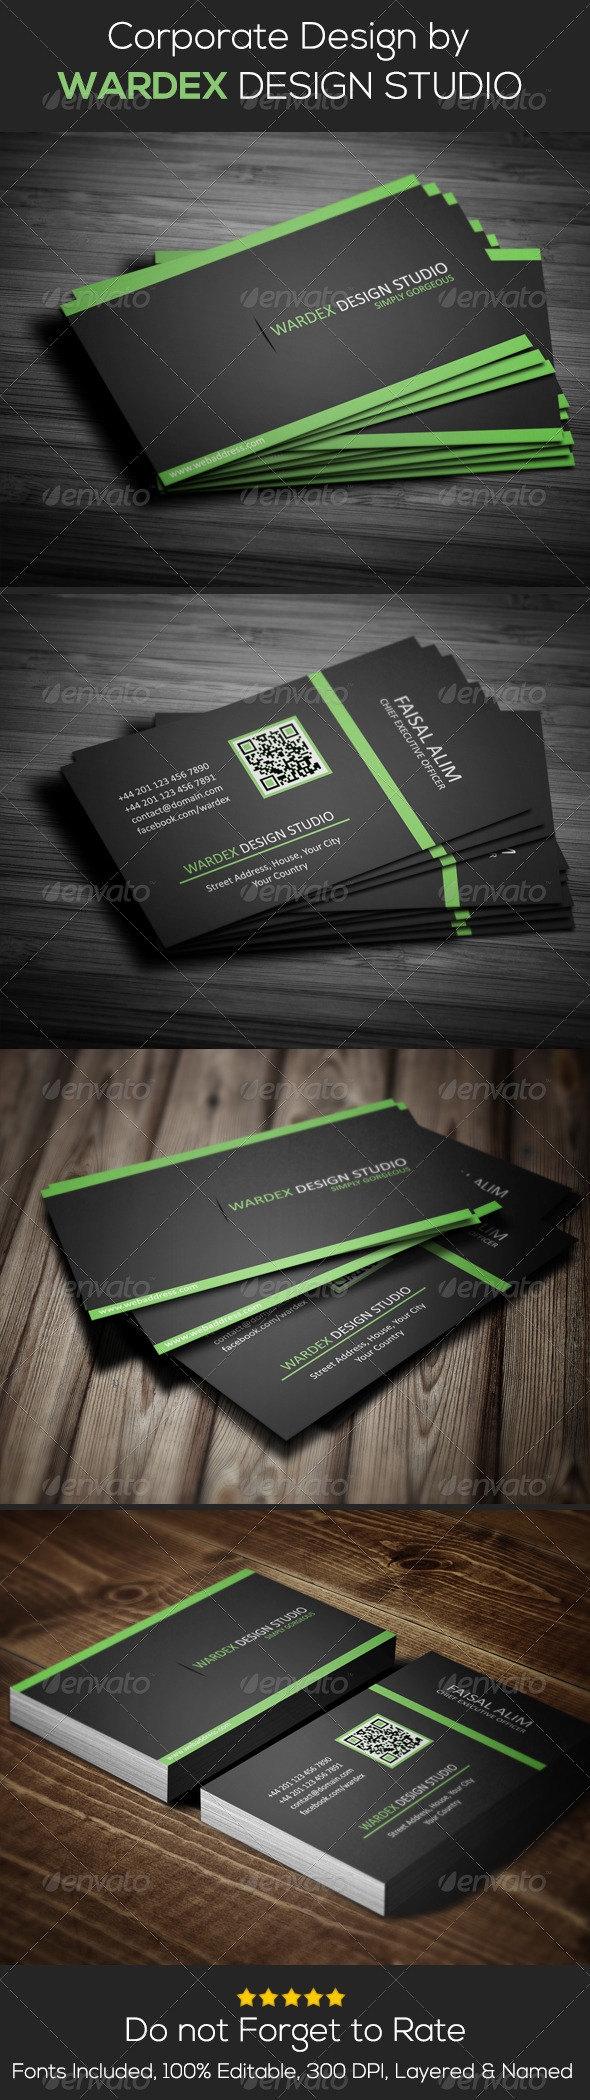 GraphicRiver Corporate & Pro Business Card Design 6891145